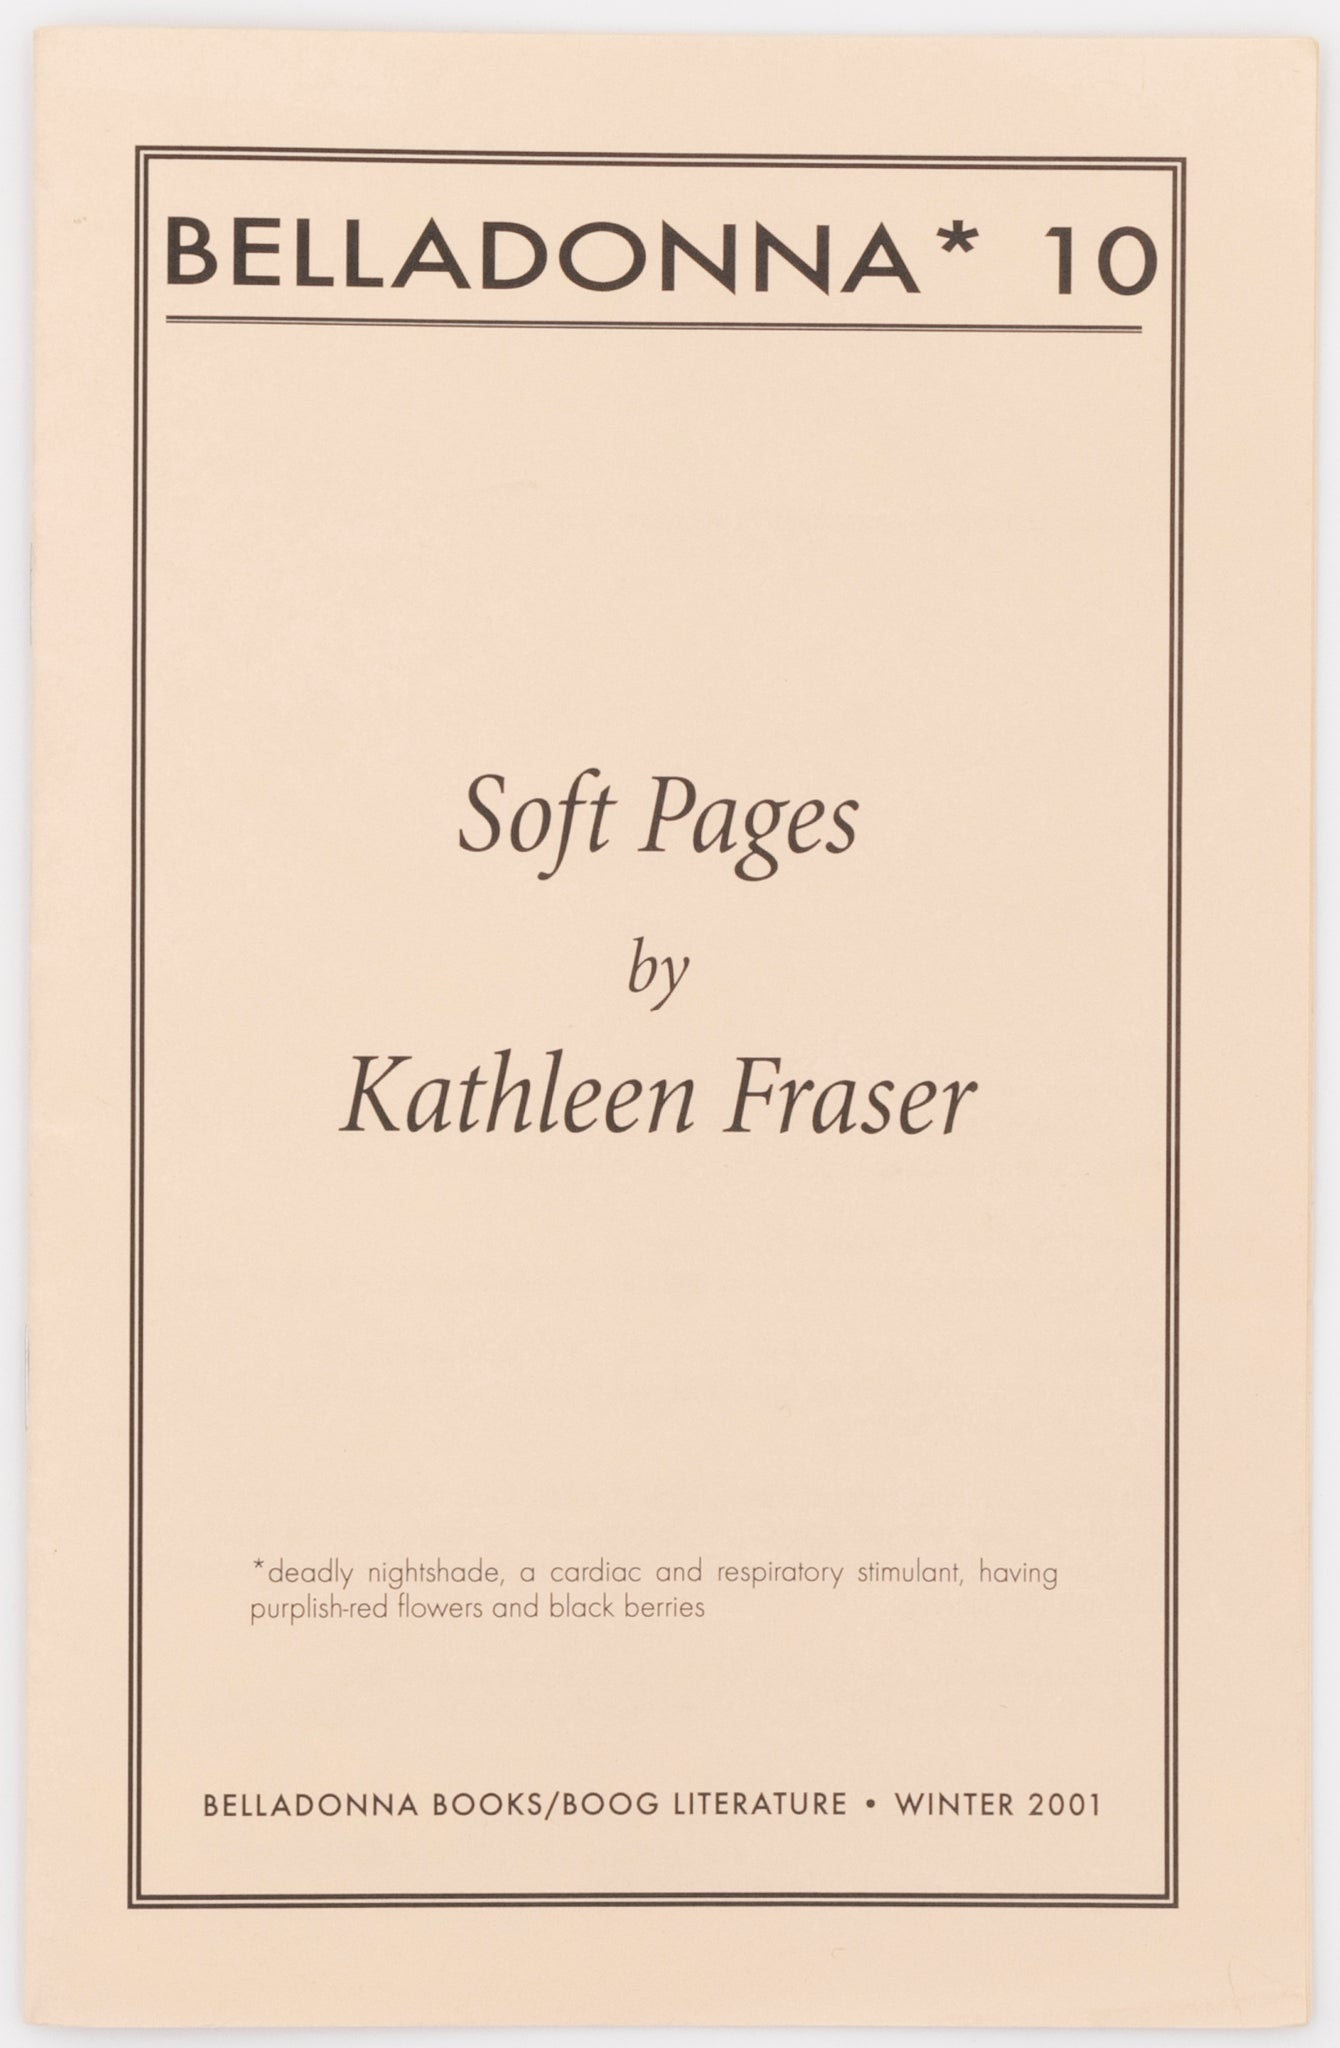 Soft Pages (Belladonna* #10)